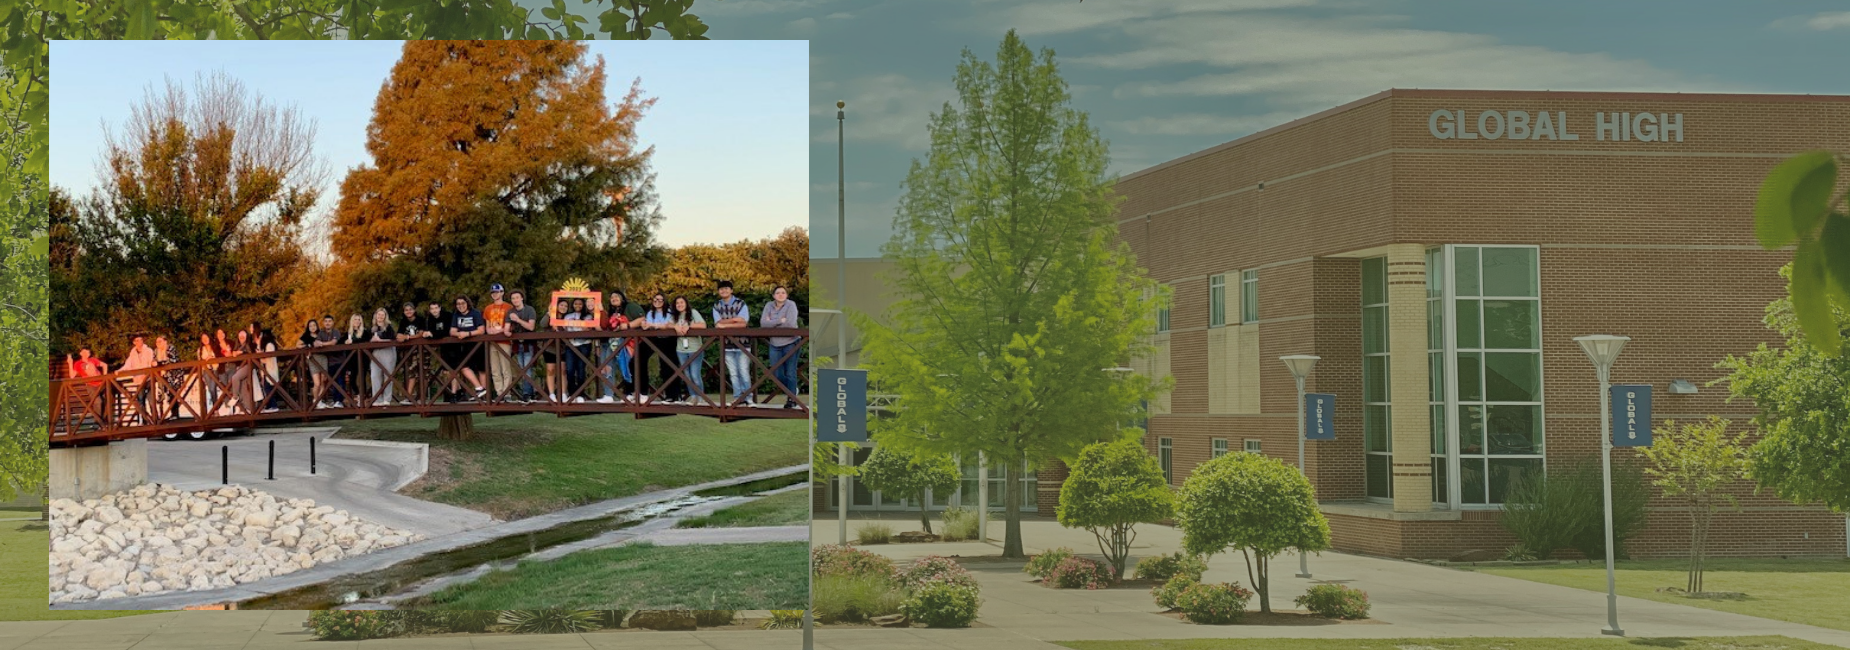 picture of student on a bridge over image of campus entrance